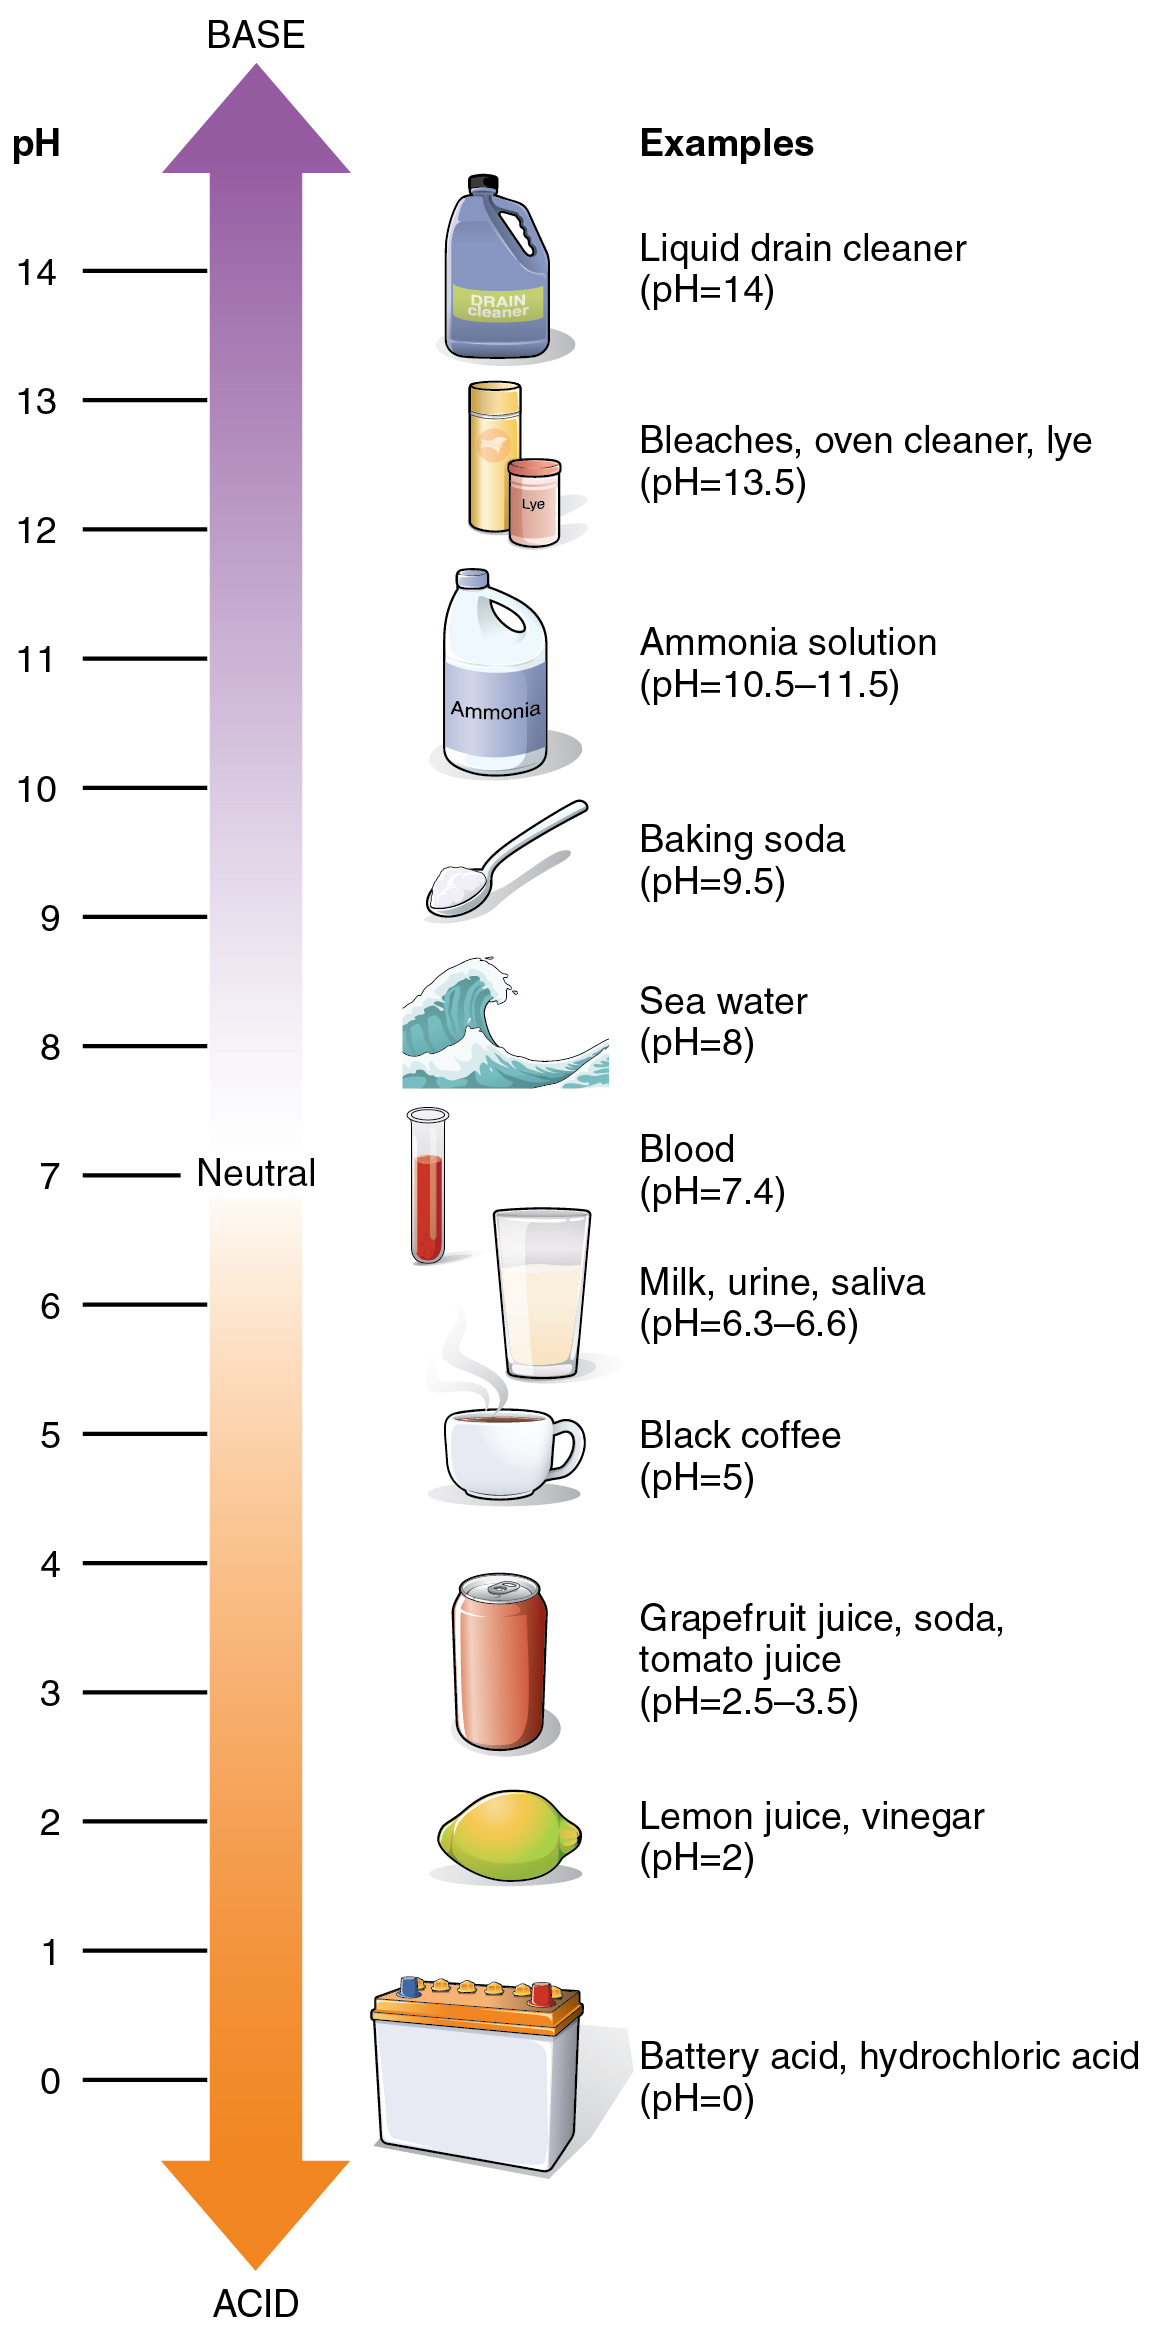 This figure shows a vertical arrow with the top half showing the basic scale and the bottom half showing the acidic scale. Different chemicals and their pH are also shown.